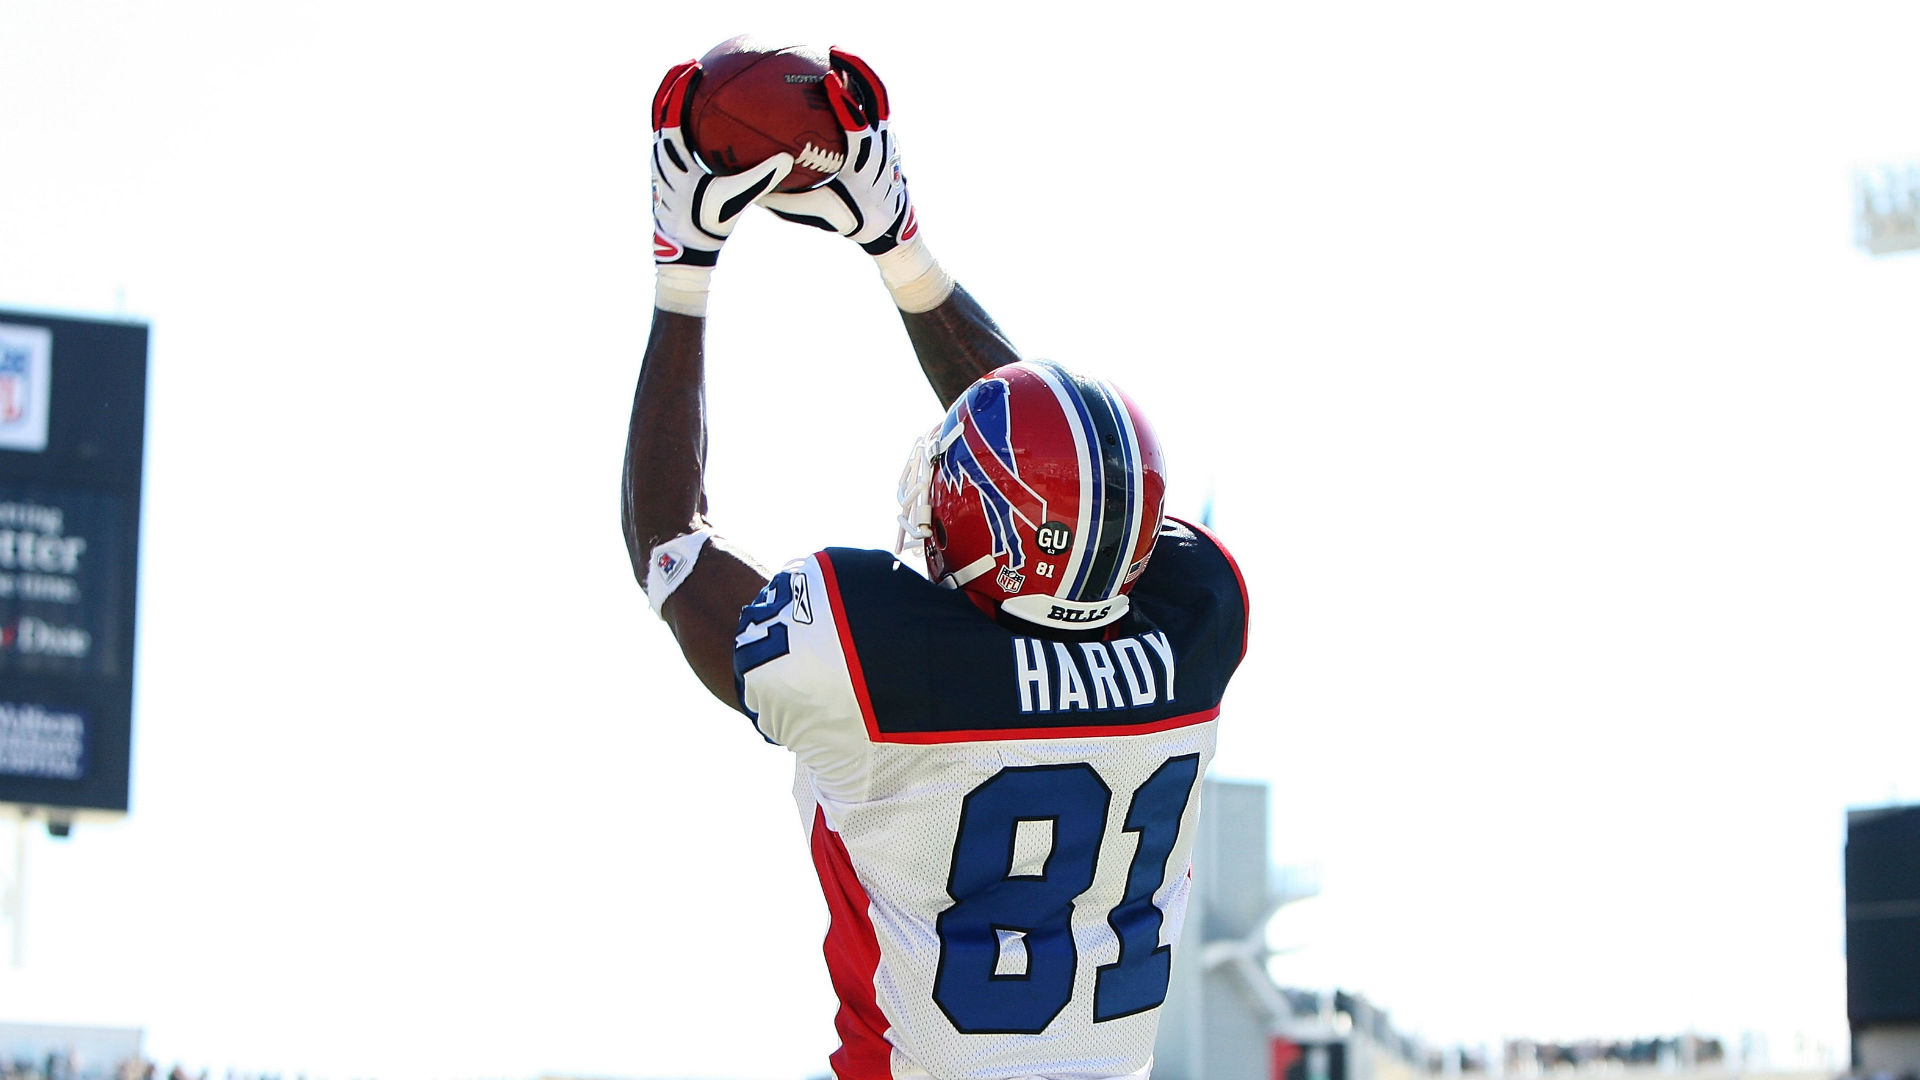 James Hardy: Former Bills second-rounder found dead in Indiana